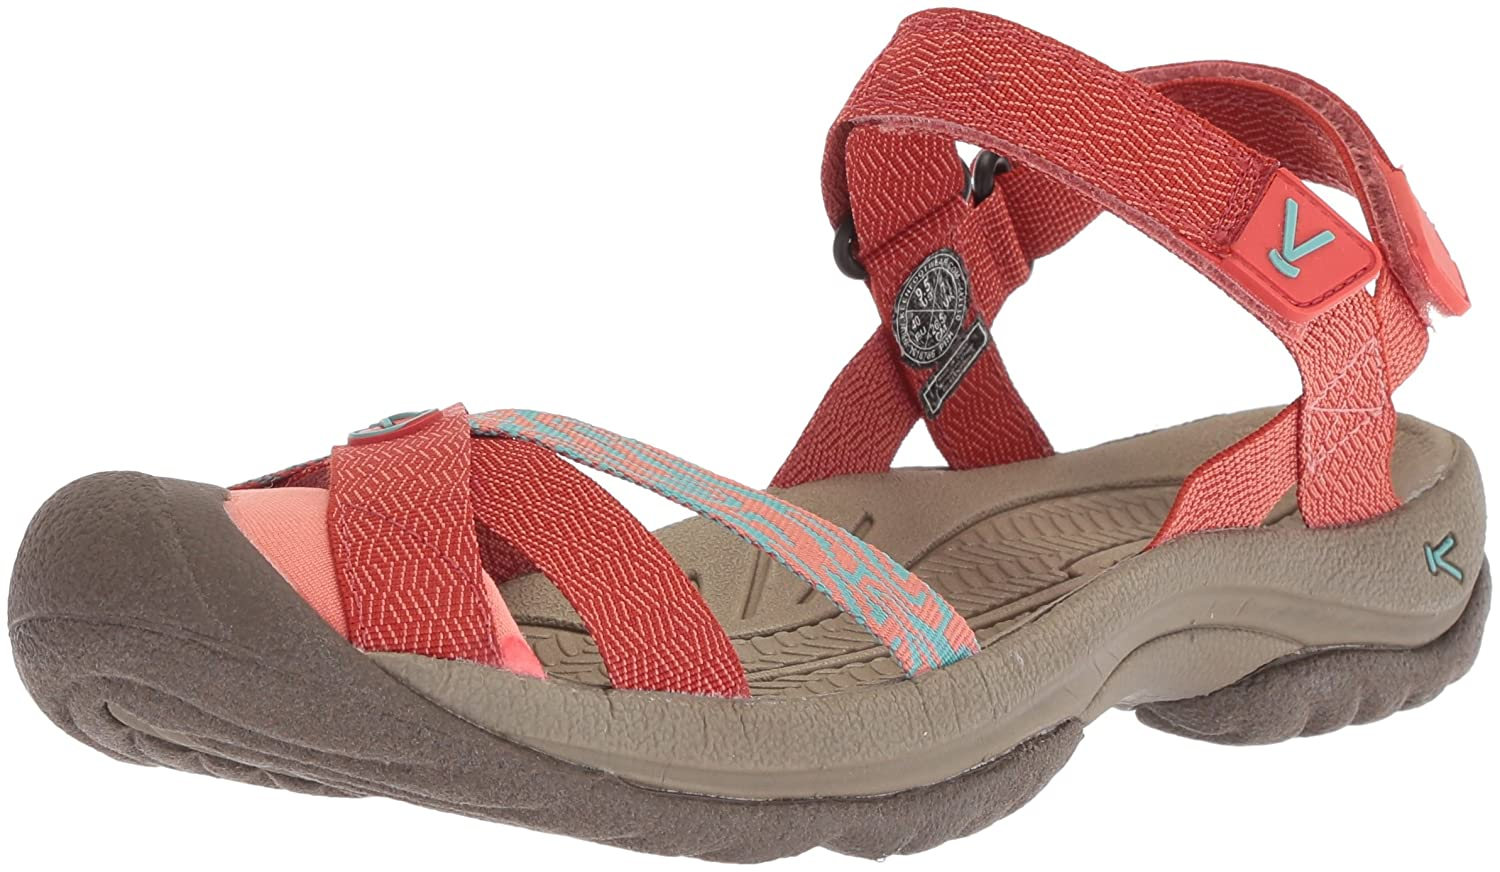 KEEN Women's Bali Strap Sandal B072281KFK 5.5 B(M) US|Summer Fig/Crabapple